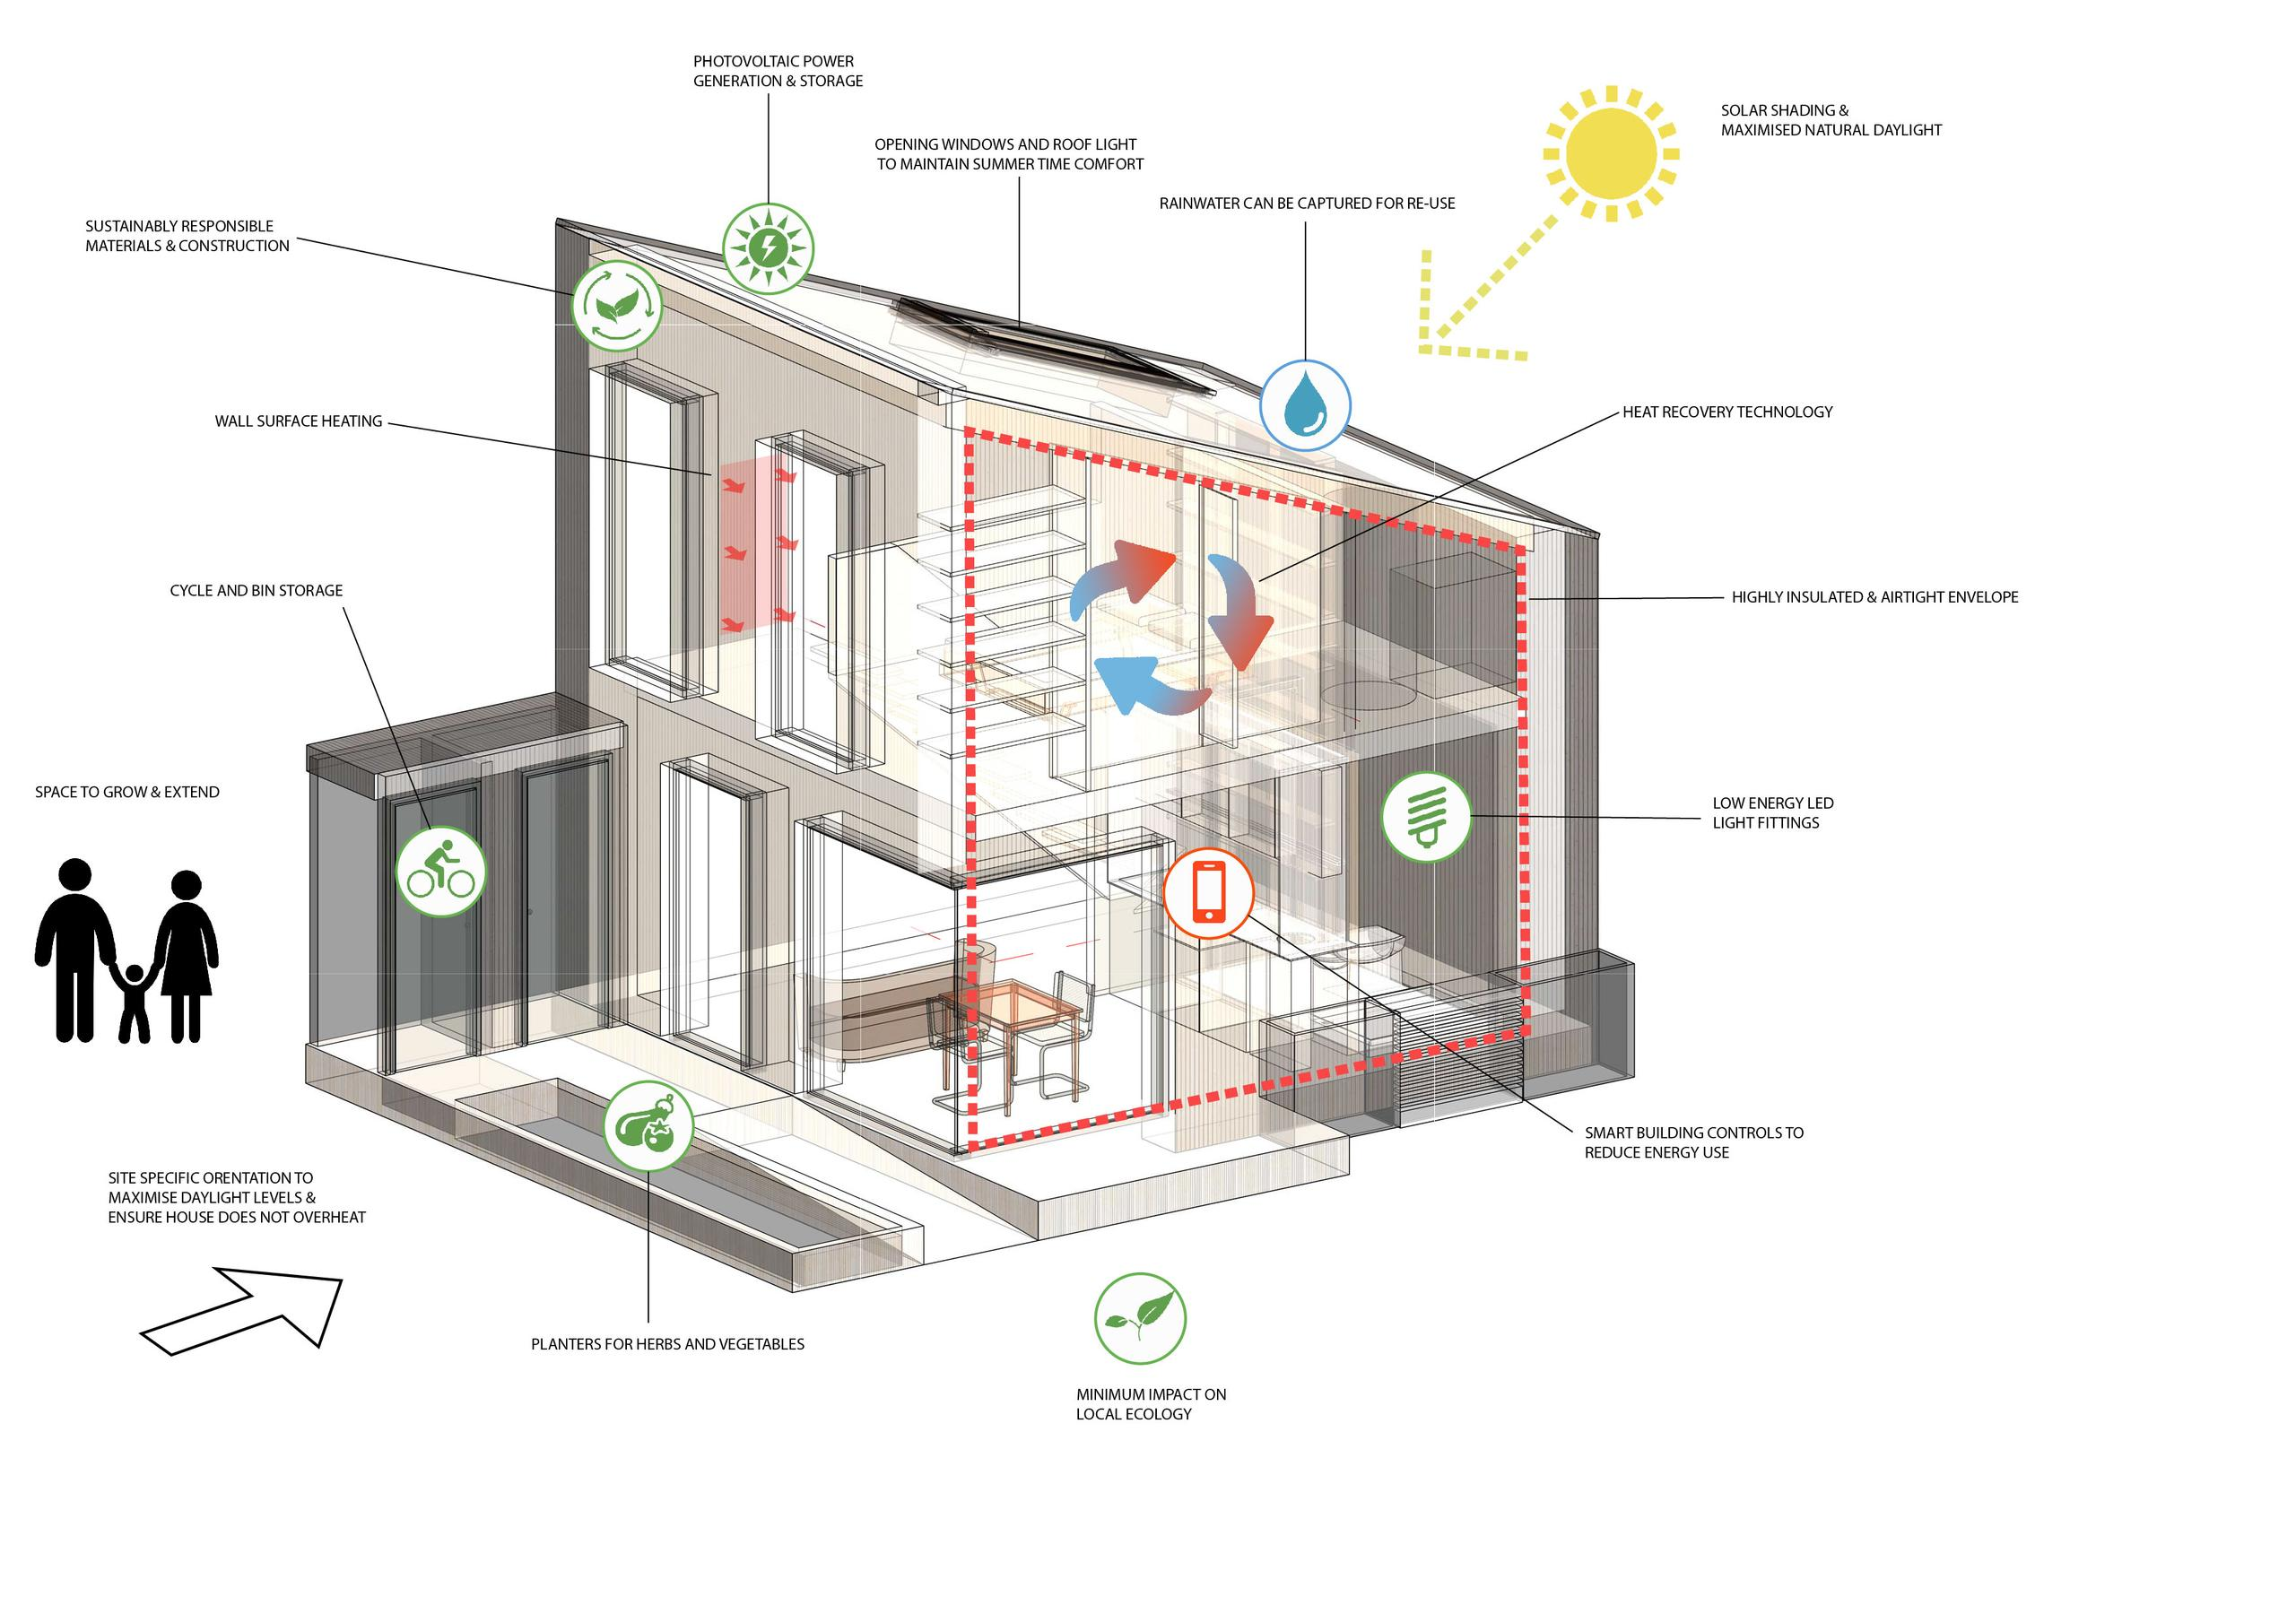 diagram of Gap House pointing out all the various sustainability features of the design